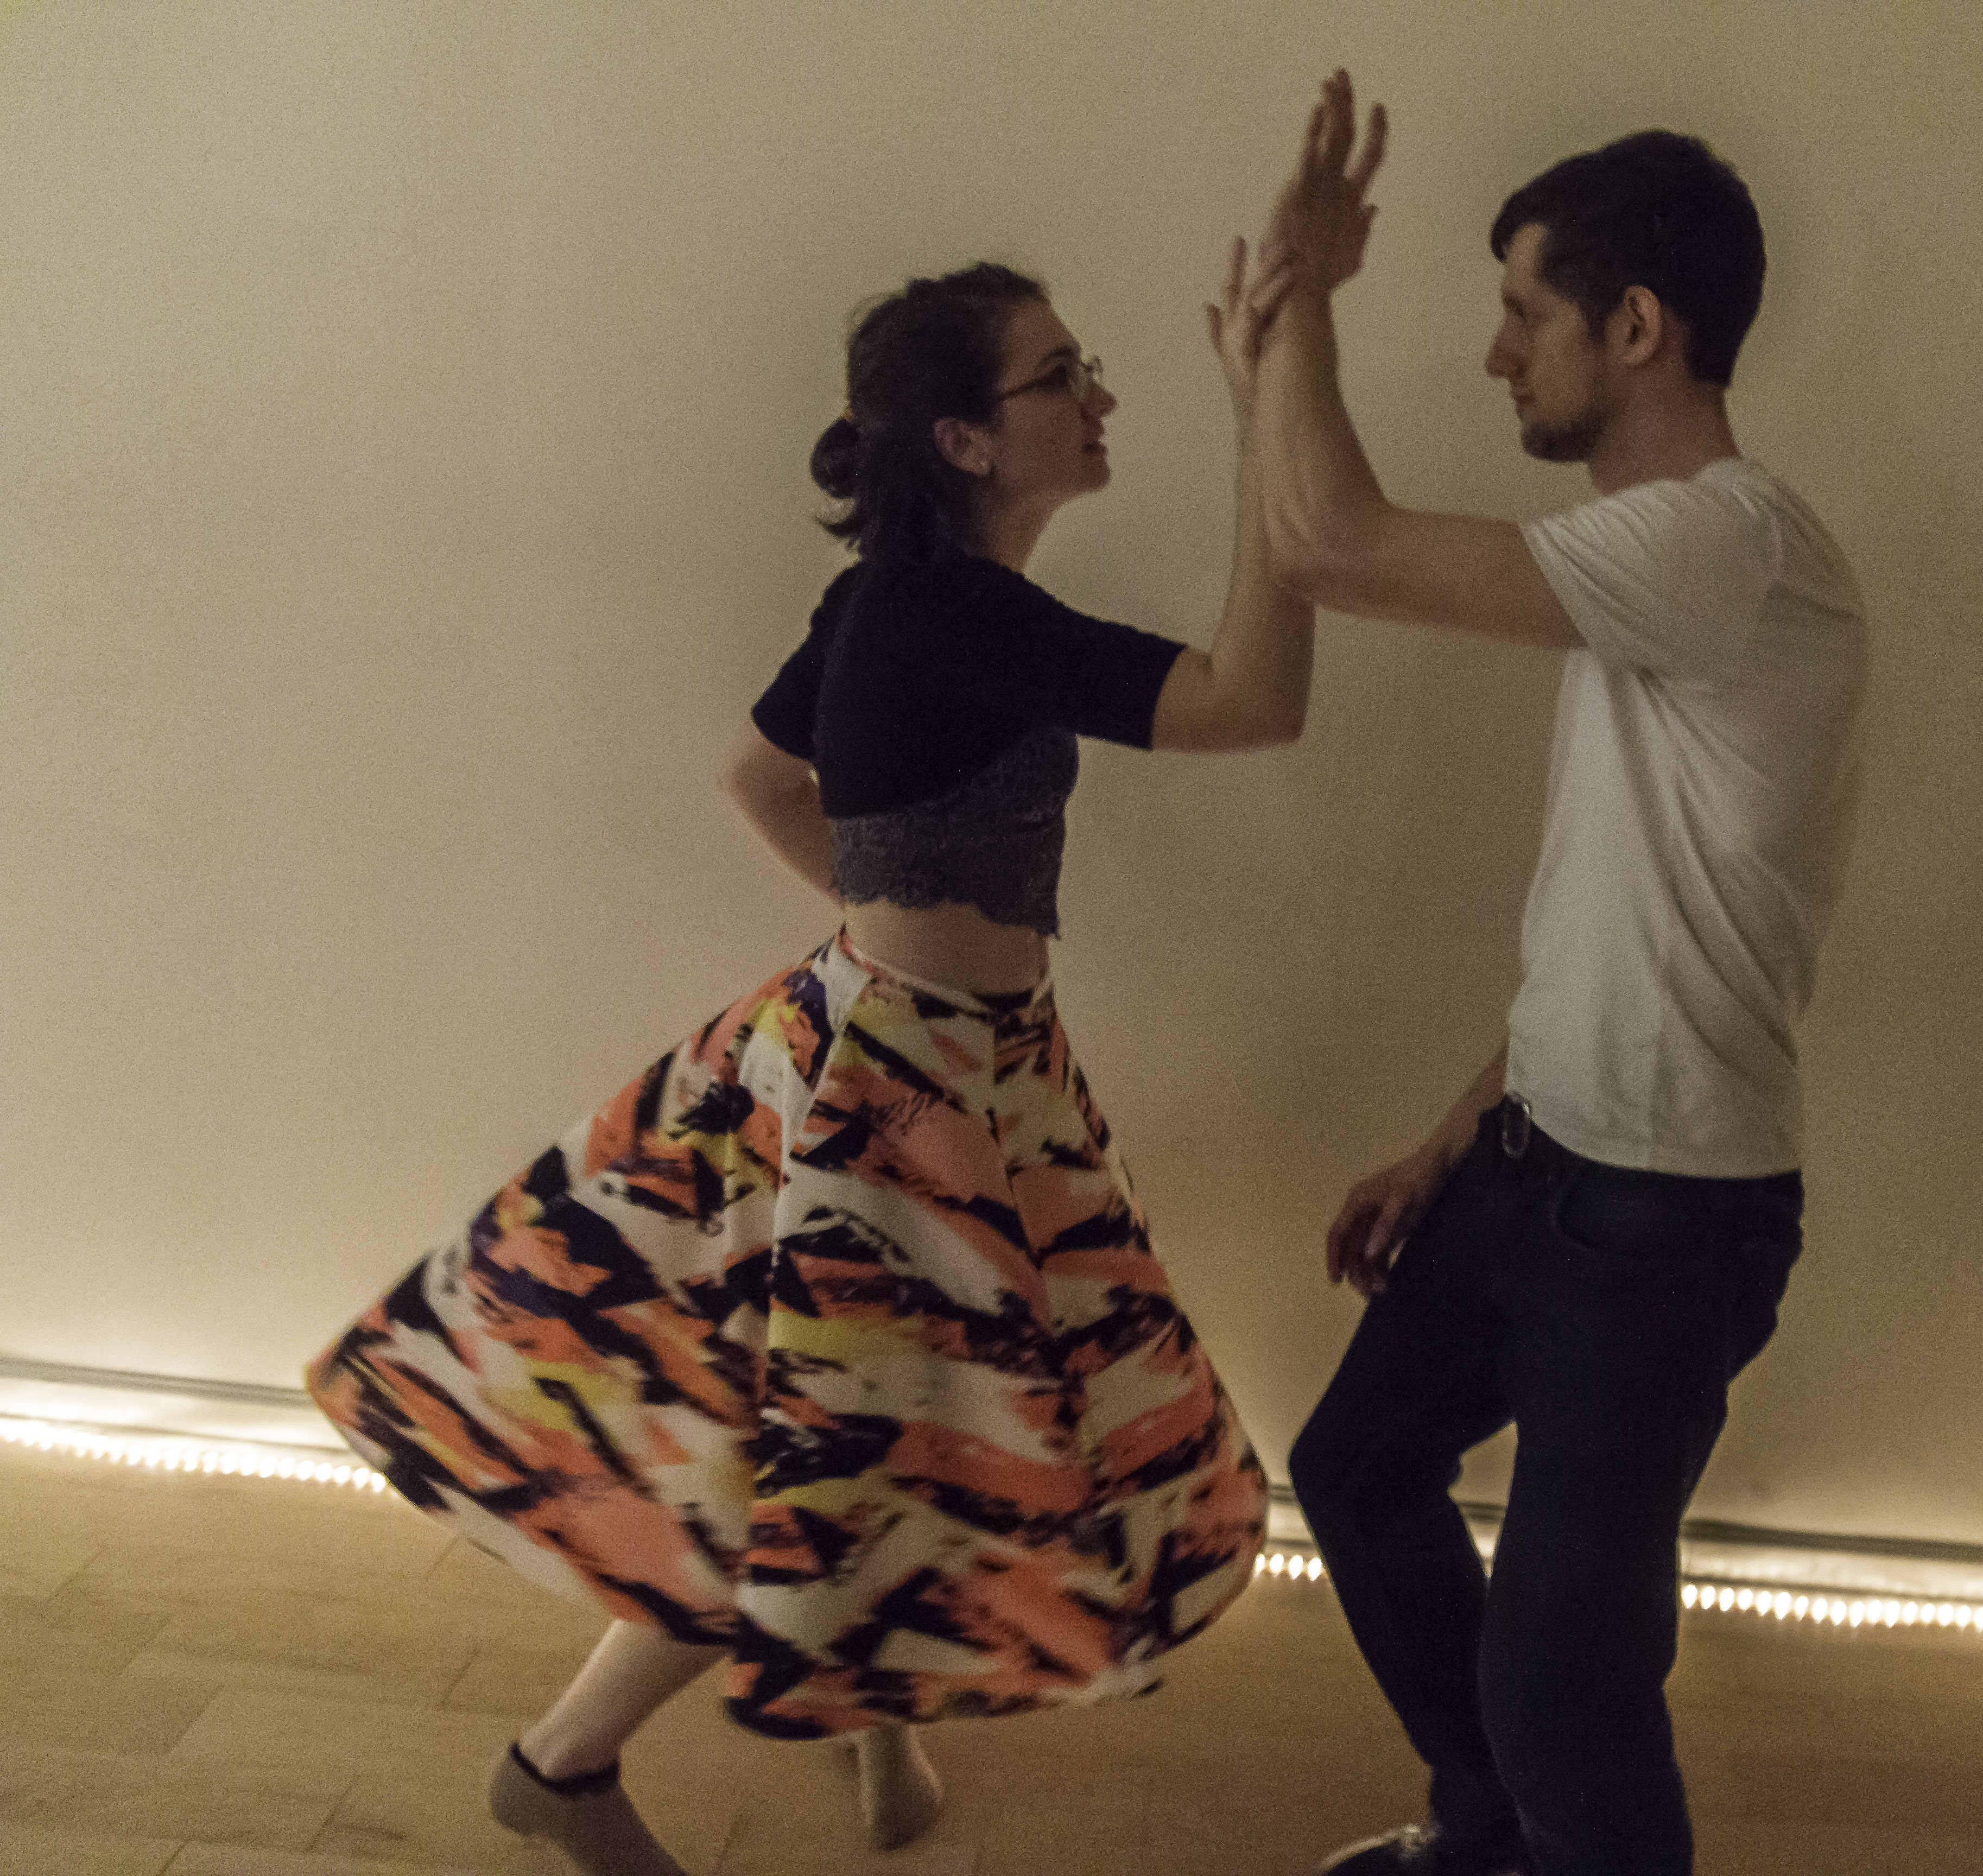 The anatomy of dance. Man and woman dancing